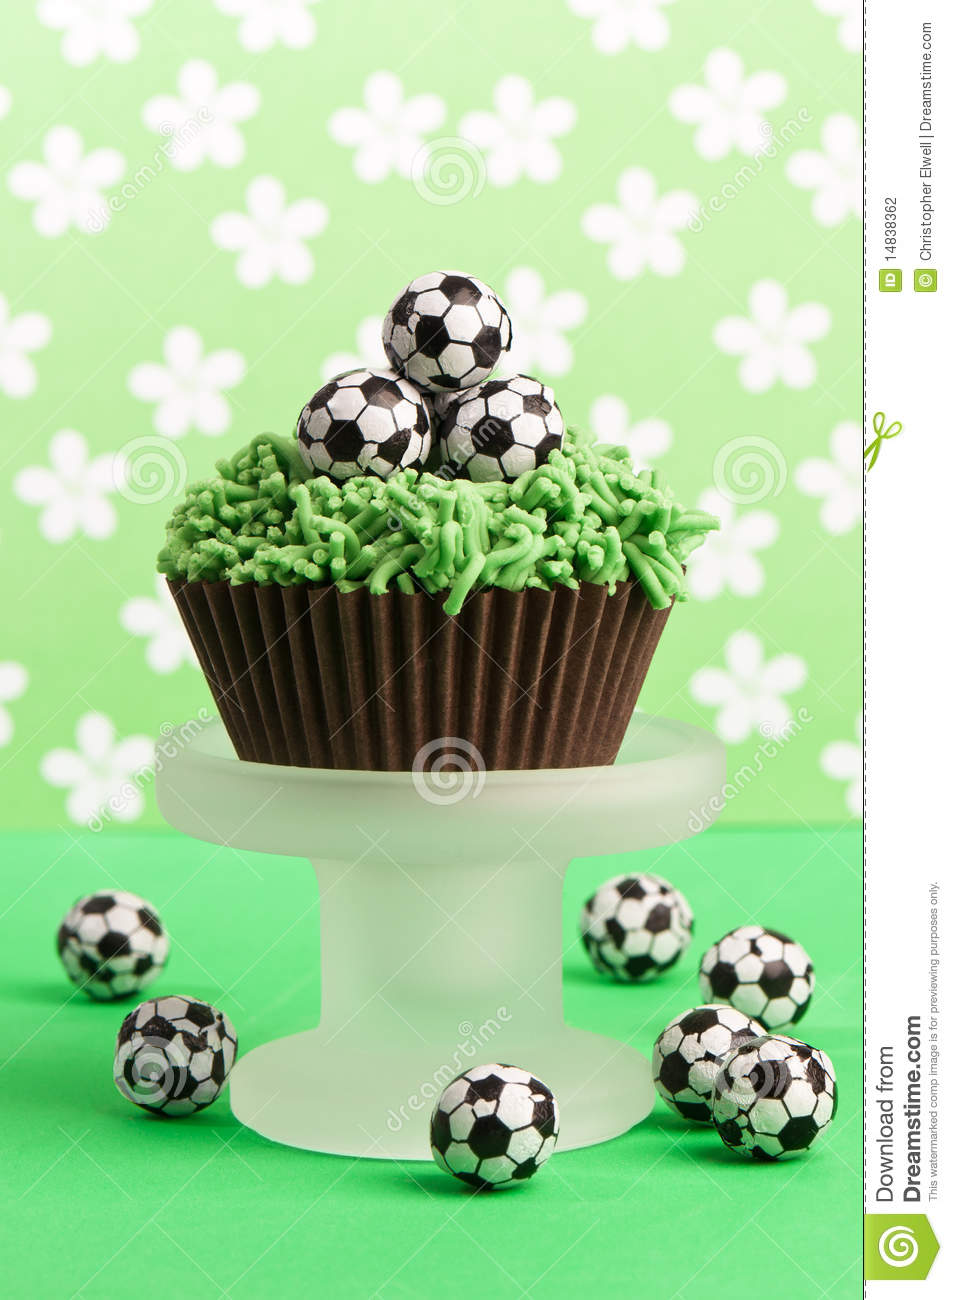 Football Birthday Cake stock photo Image of display 14838362